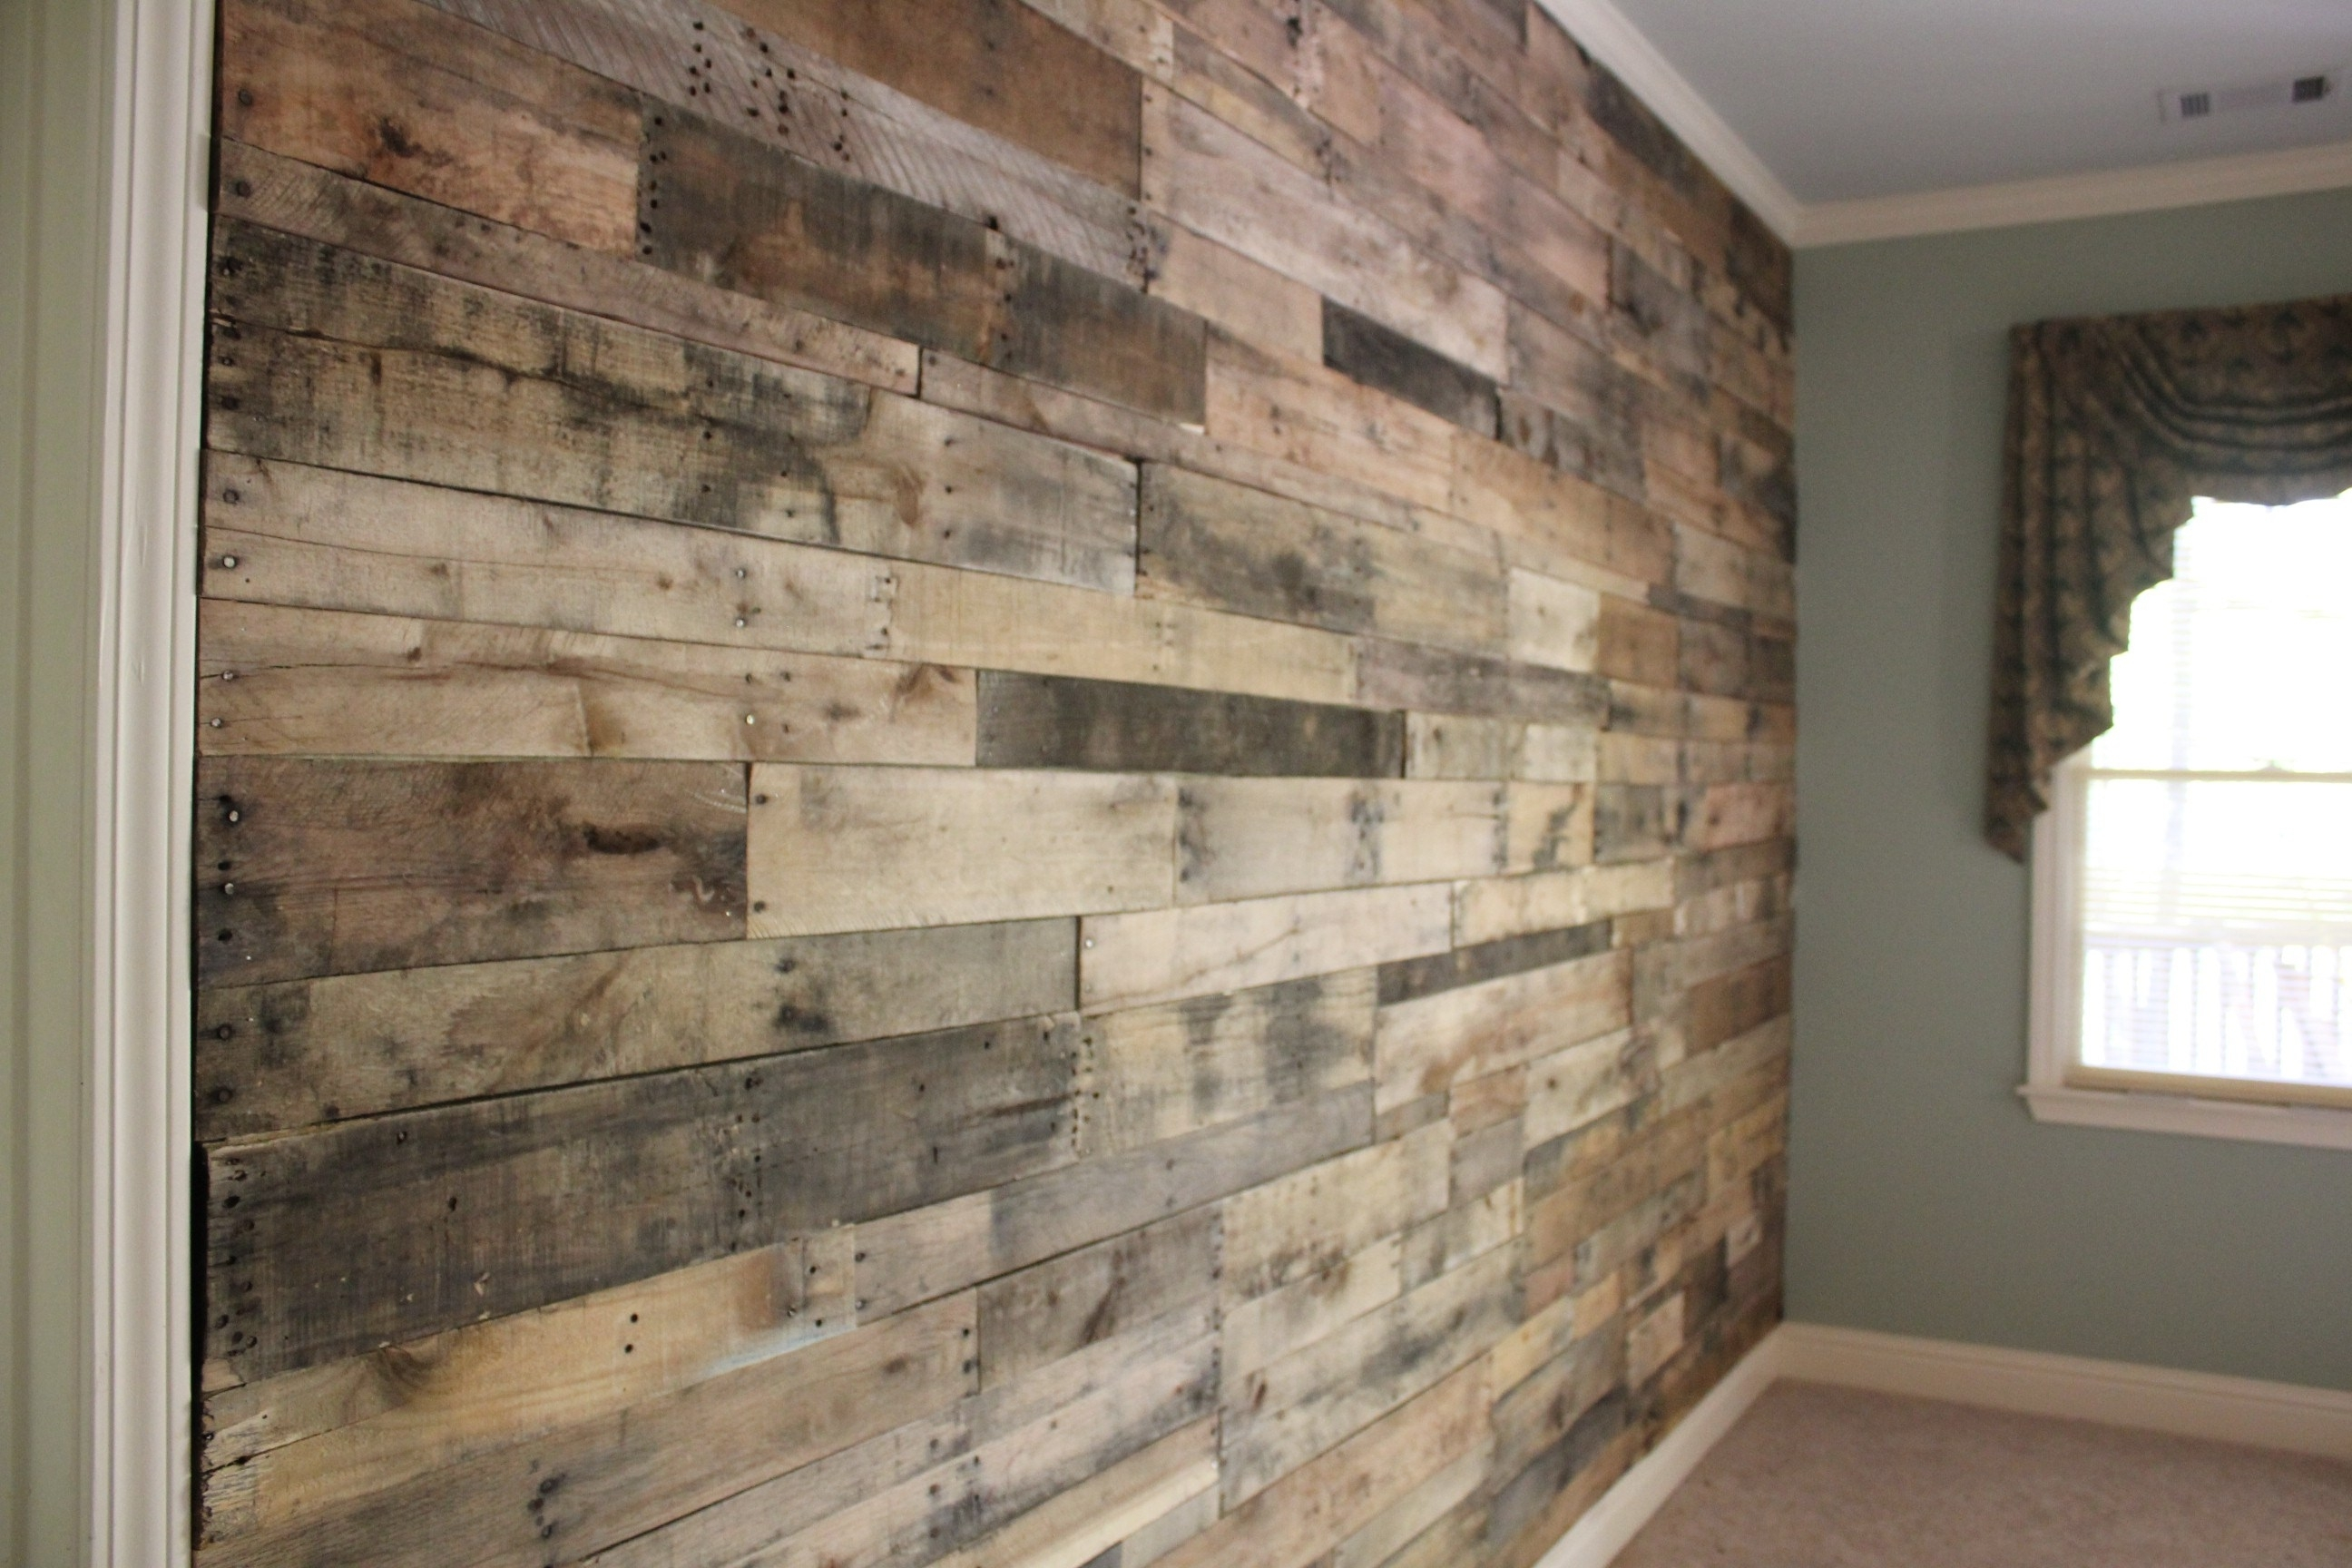 Wood Wall Accent Amazing Home Interior Design Ideasjimmy Within Most Recent Reclaimed Wood Wall Accents (View 3 of 15)